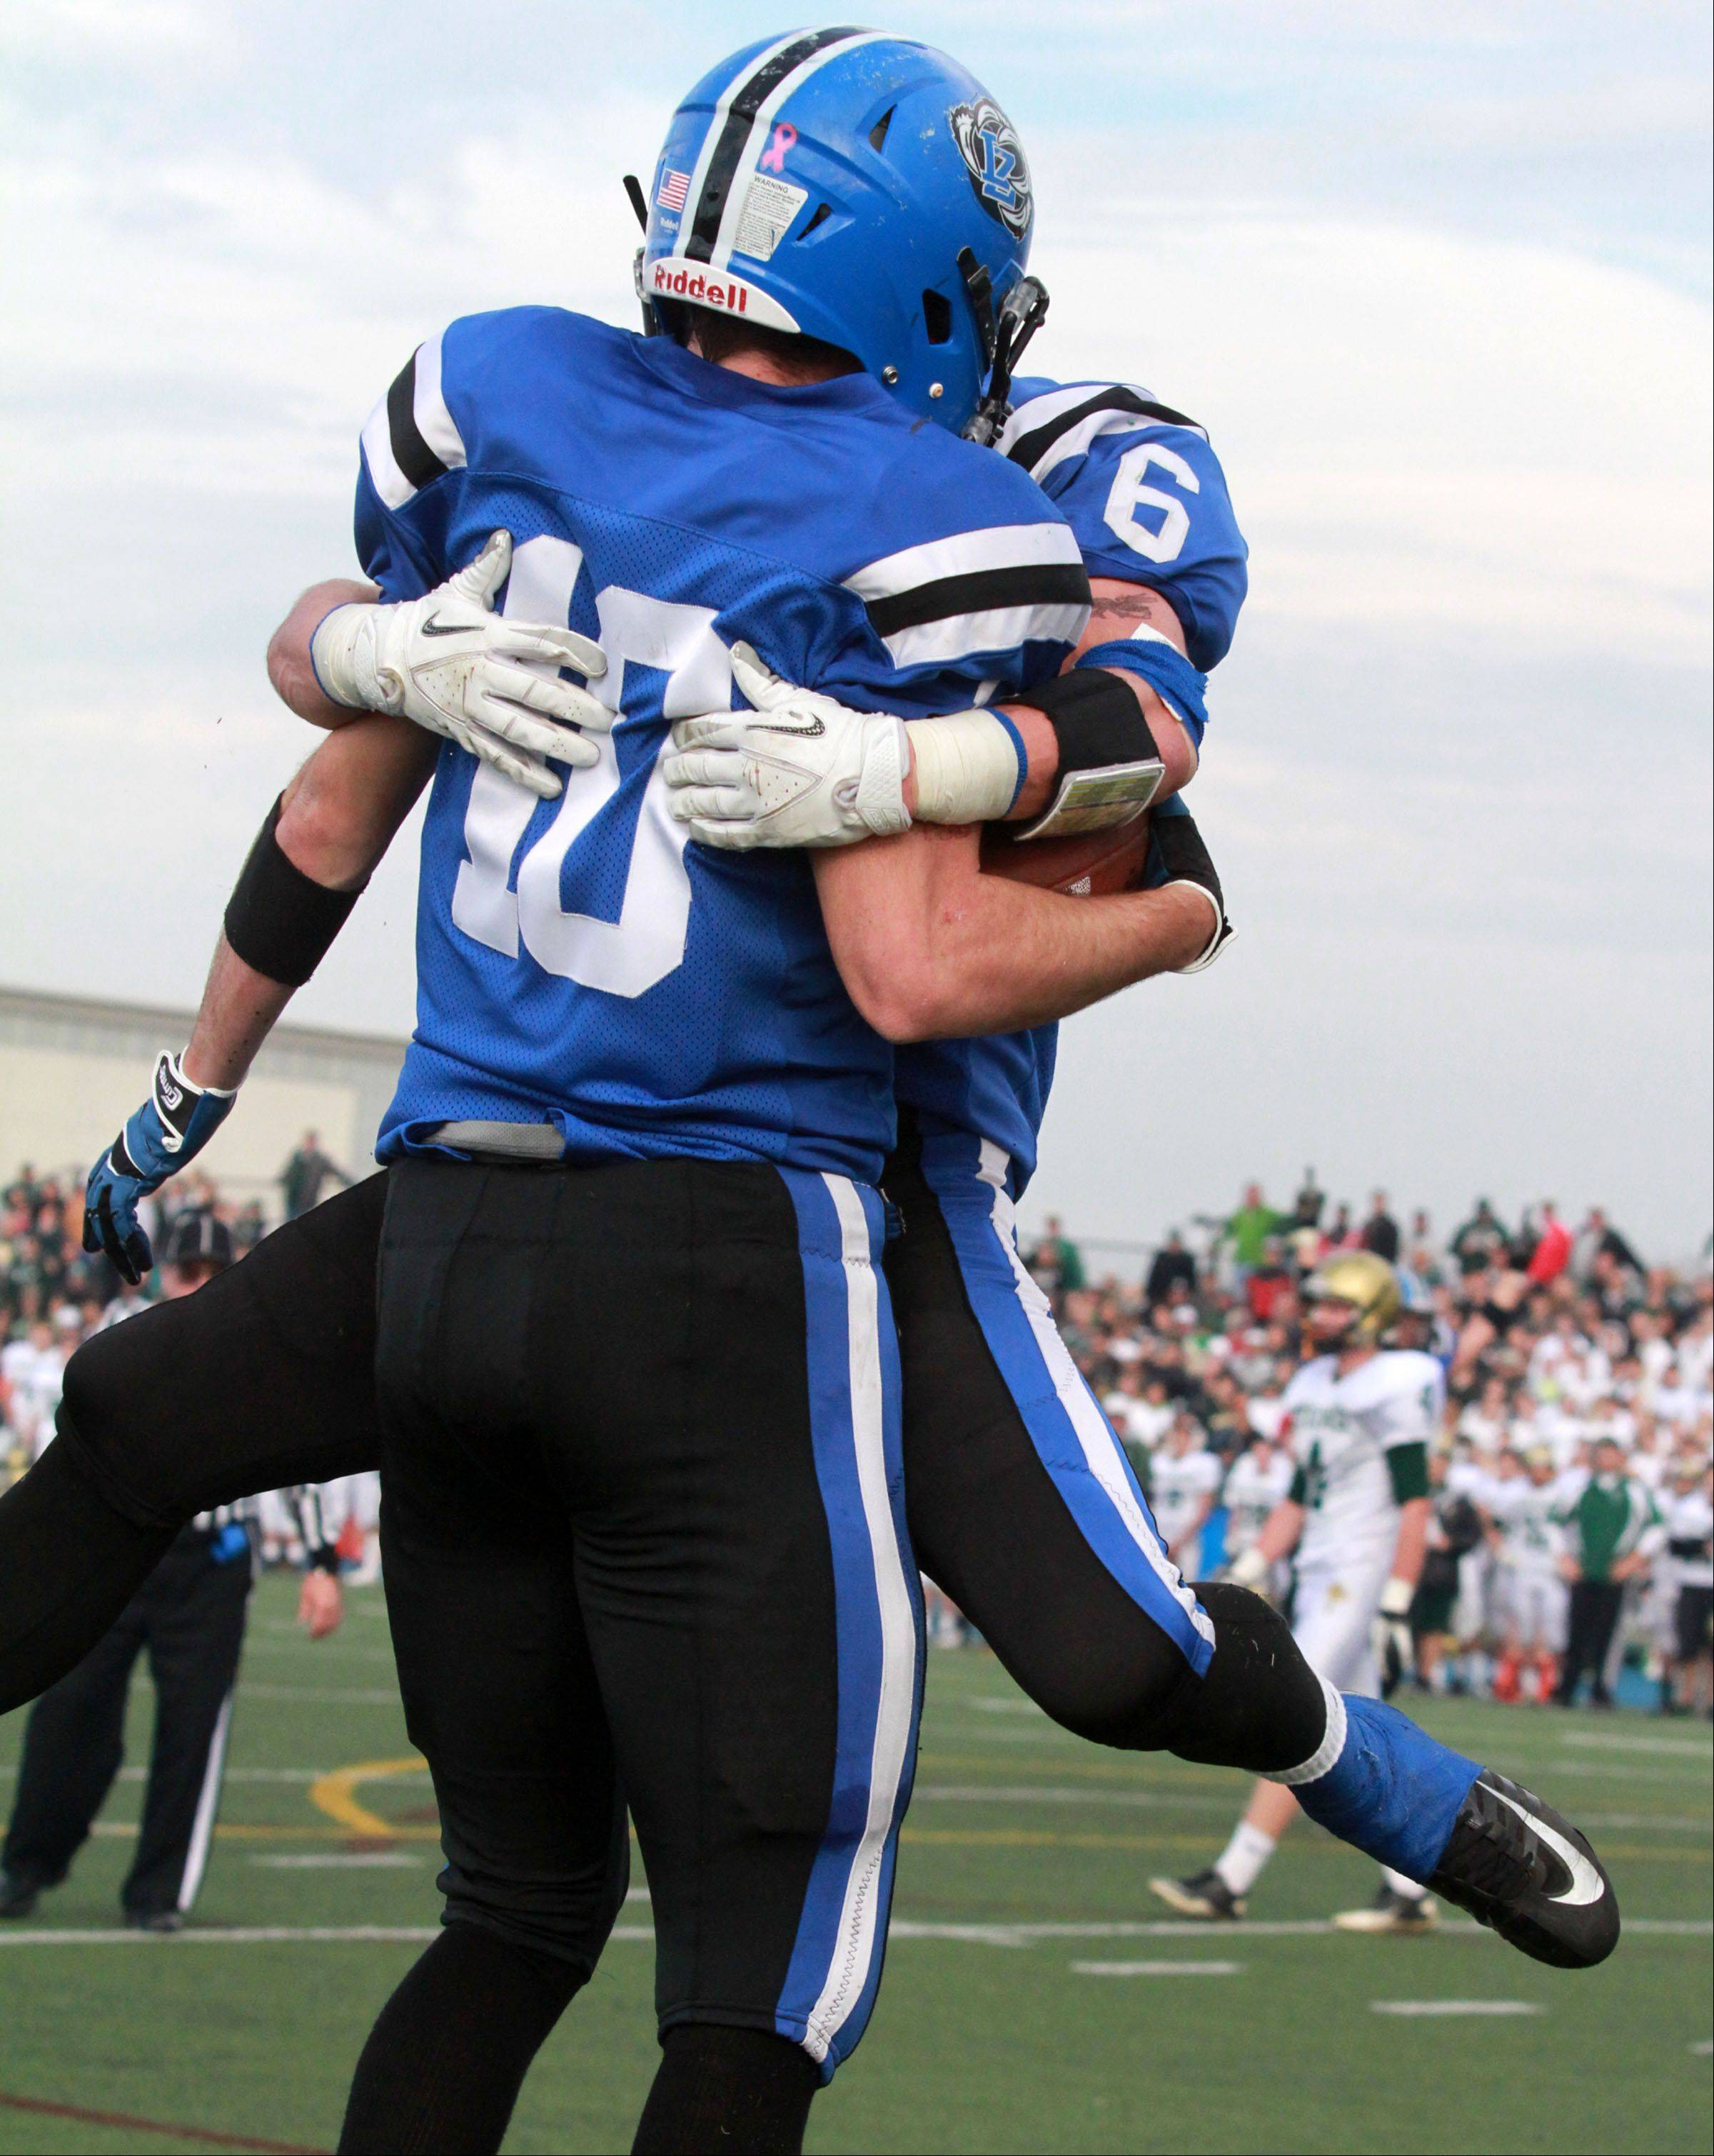 Lake Zurich's Sean Lynch leaps into the arms of Jake Stauner after Stauner caught a touchdown pass against Rockford Boylan in Class 7A state quarterfinal play at Lake Zurich on Saturday.